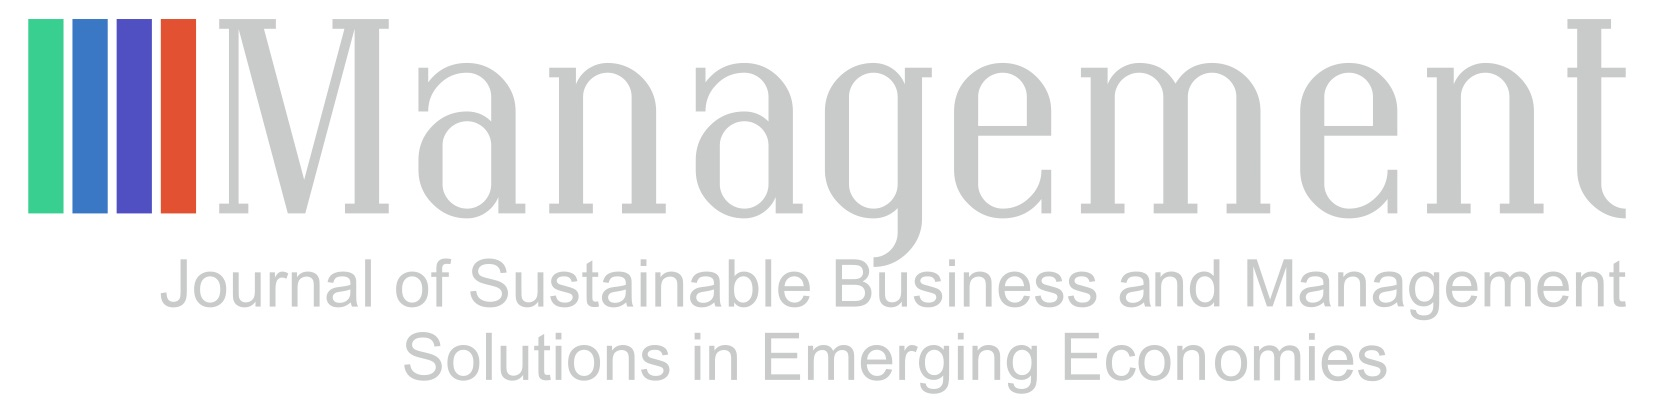 Management: Journal of Sustainable Business and Management Solutions in Emerging Economies